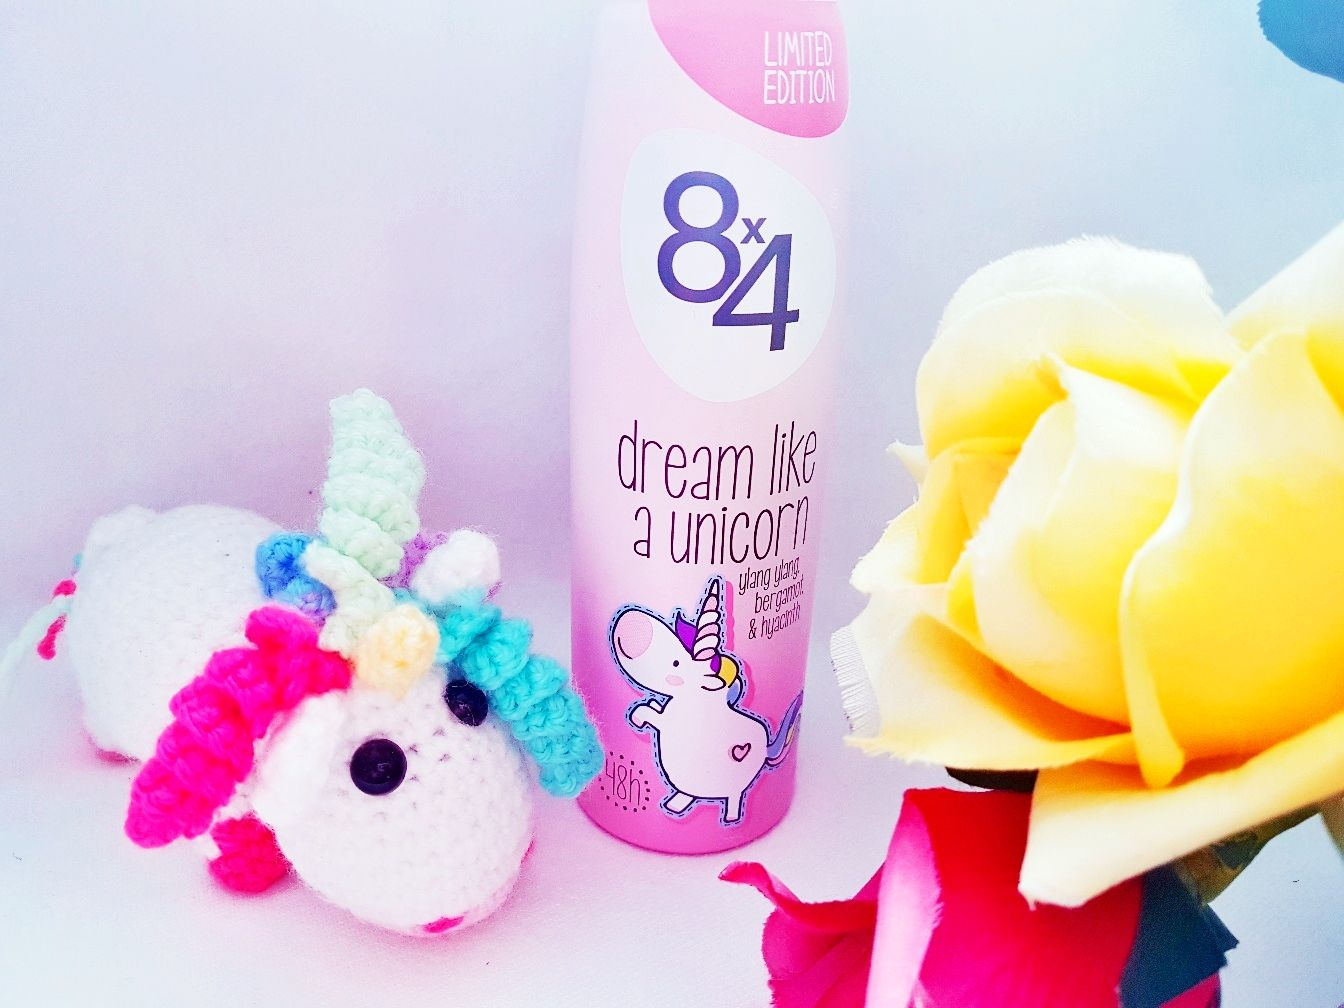 8x4 Deo Dream like a unicorn